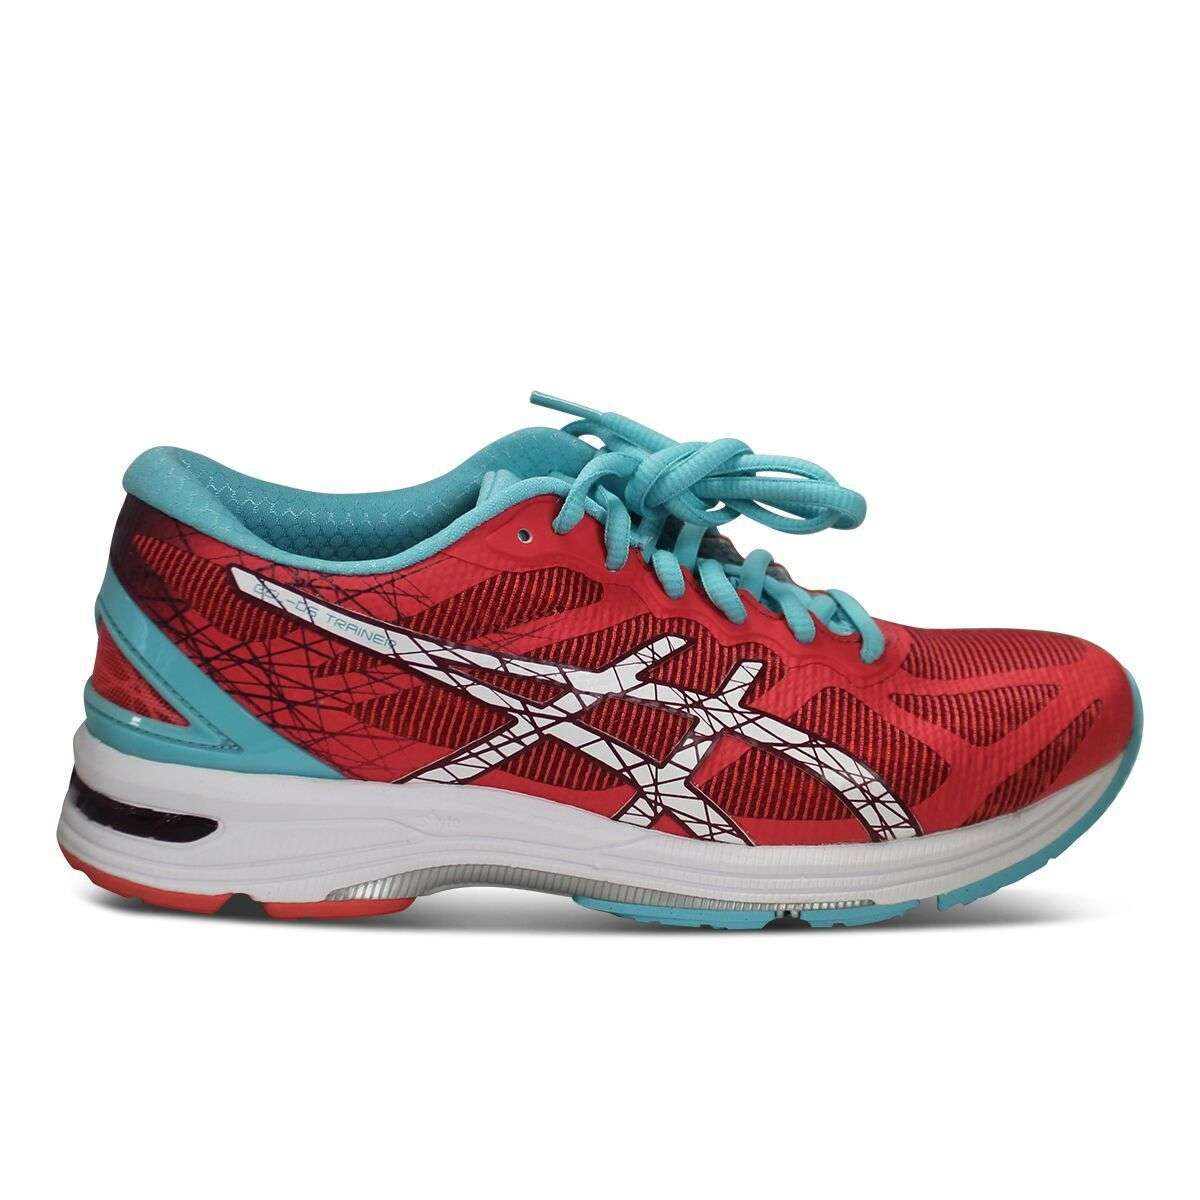 quality design 59492 7ee36 Asics Women's Gel-DS Trainer 21 Running Shoes